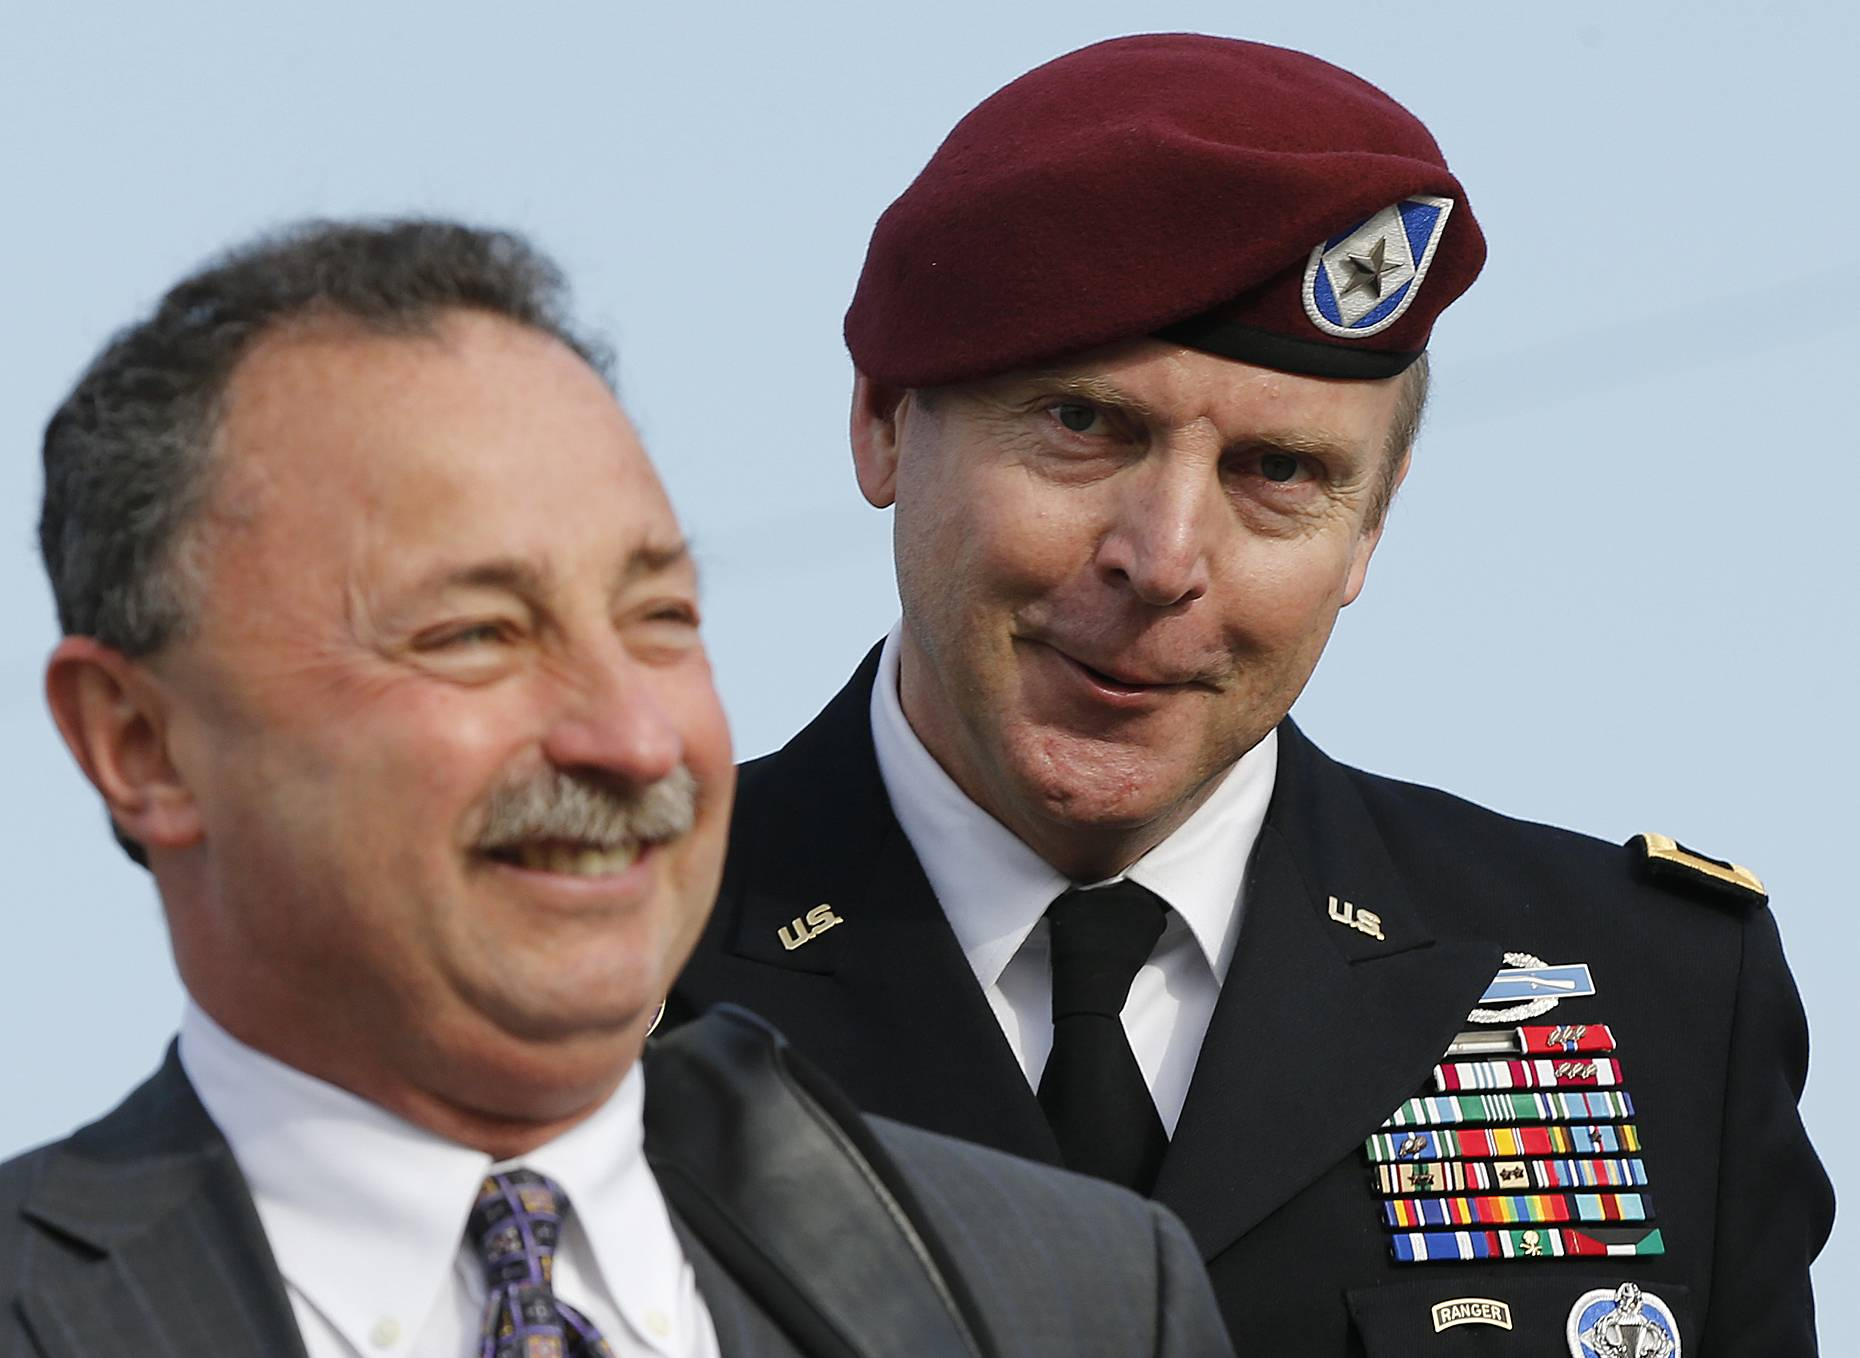 Brig. Gen. Jeffrey Sinclair, right, who admitted to inappropriate relationships with three subordinates, was spared any time behind bars Thursday and sentenced to a reprimand and a $20,000 fine.